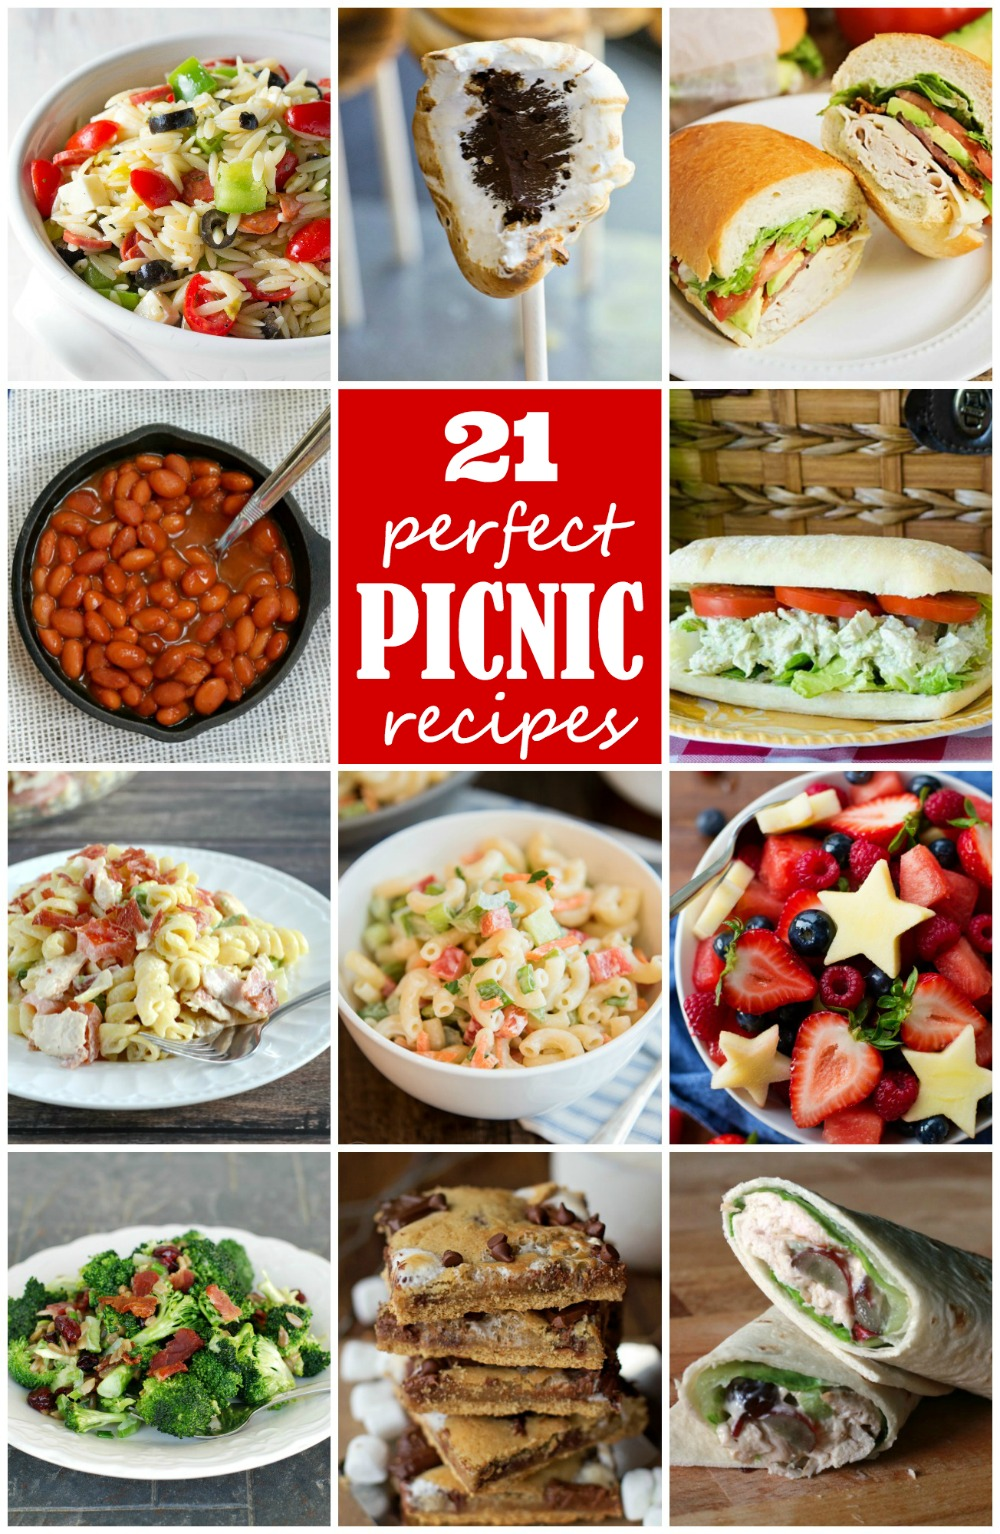 21 perfect picnic recipes